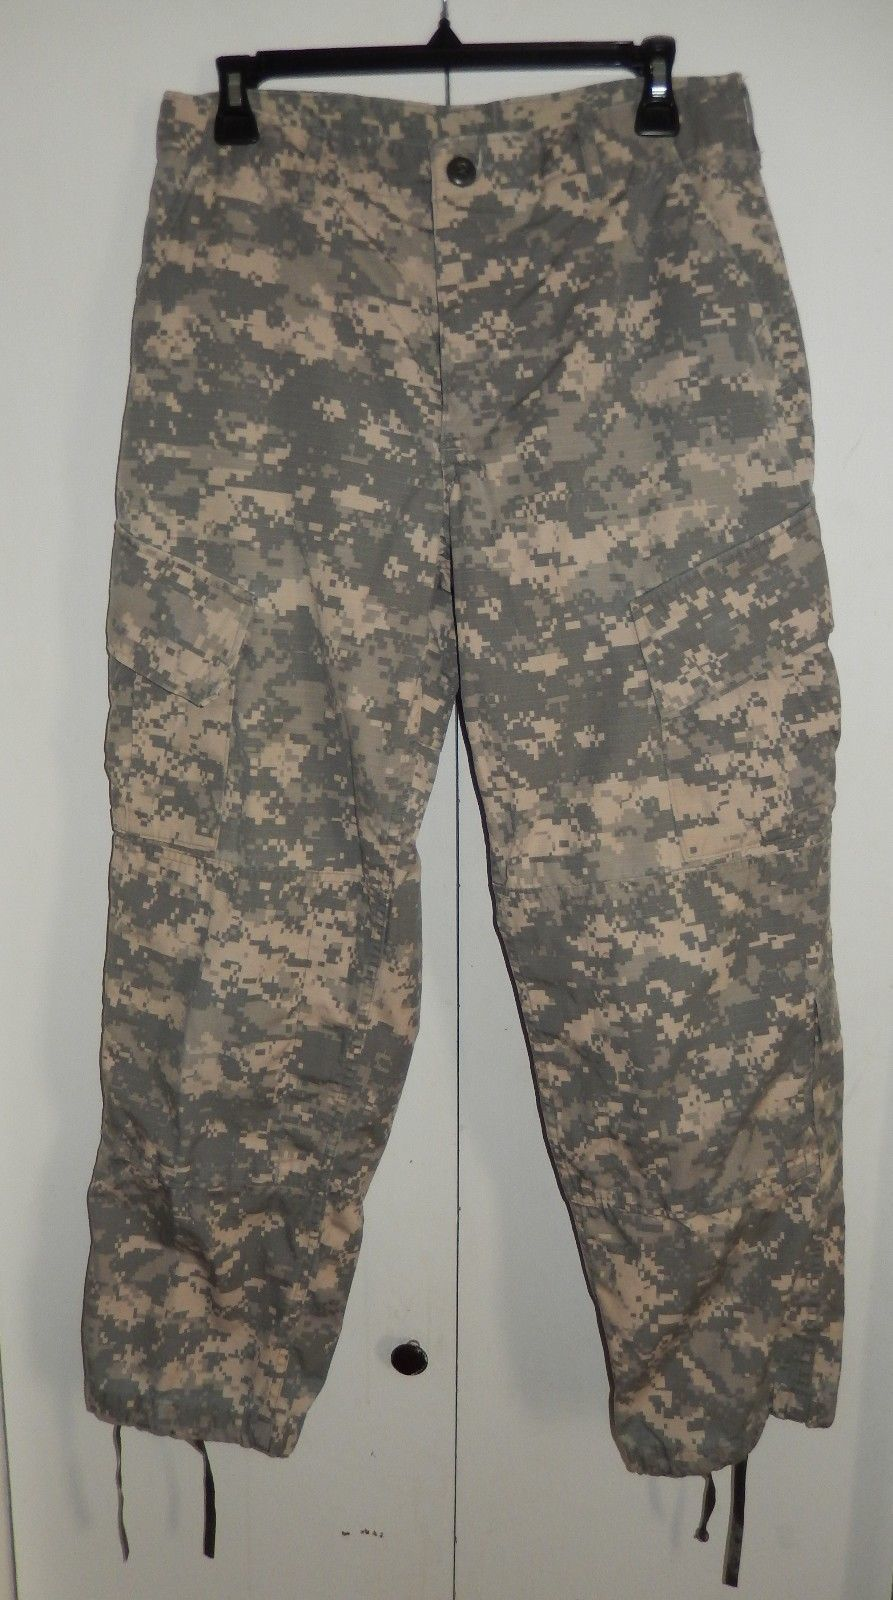 83f43feeef635 US Army Digital Camo Uniform Combat Pants and 50 similar items